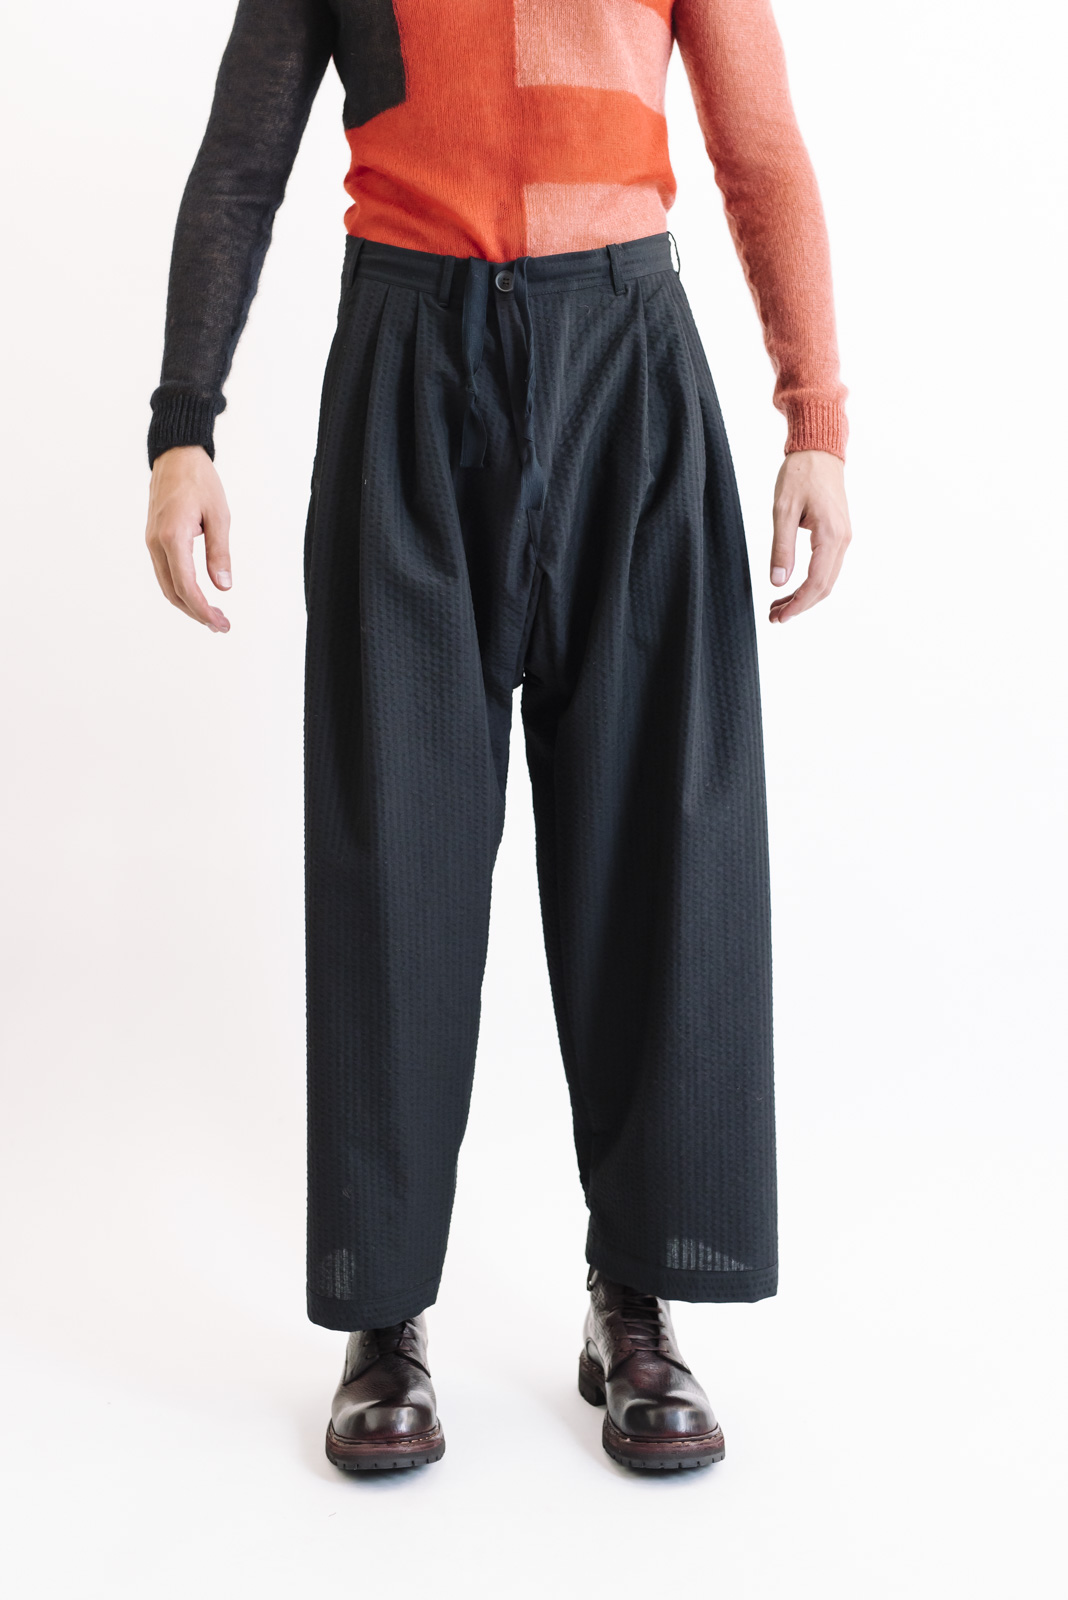 janjanvanessche trousers#54 black wool aw19